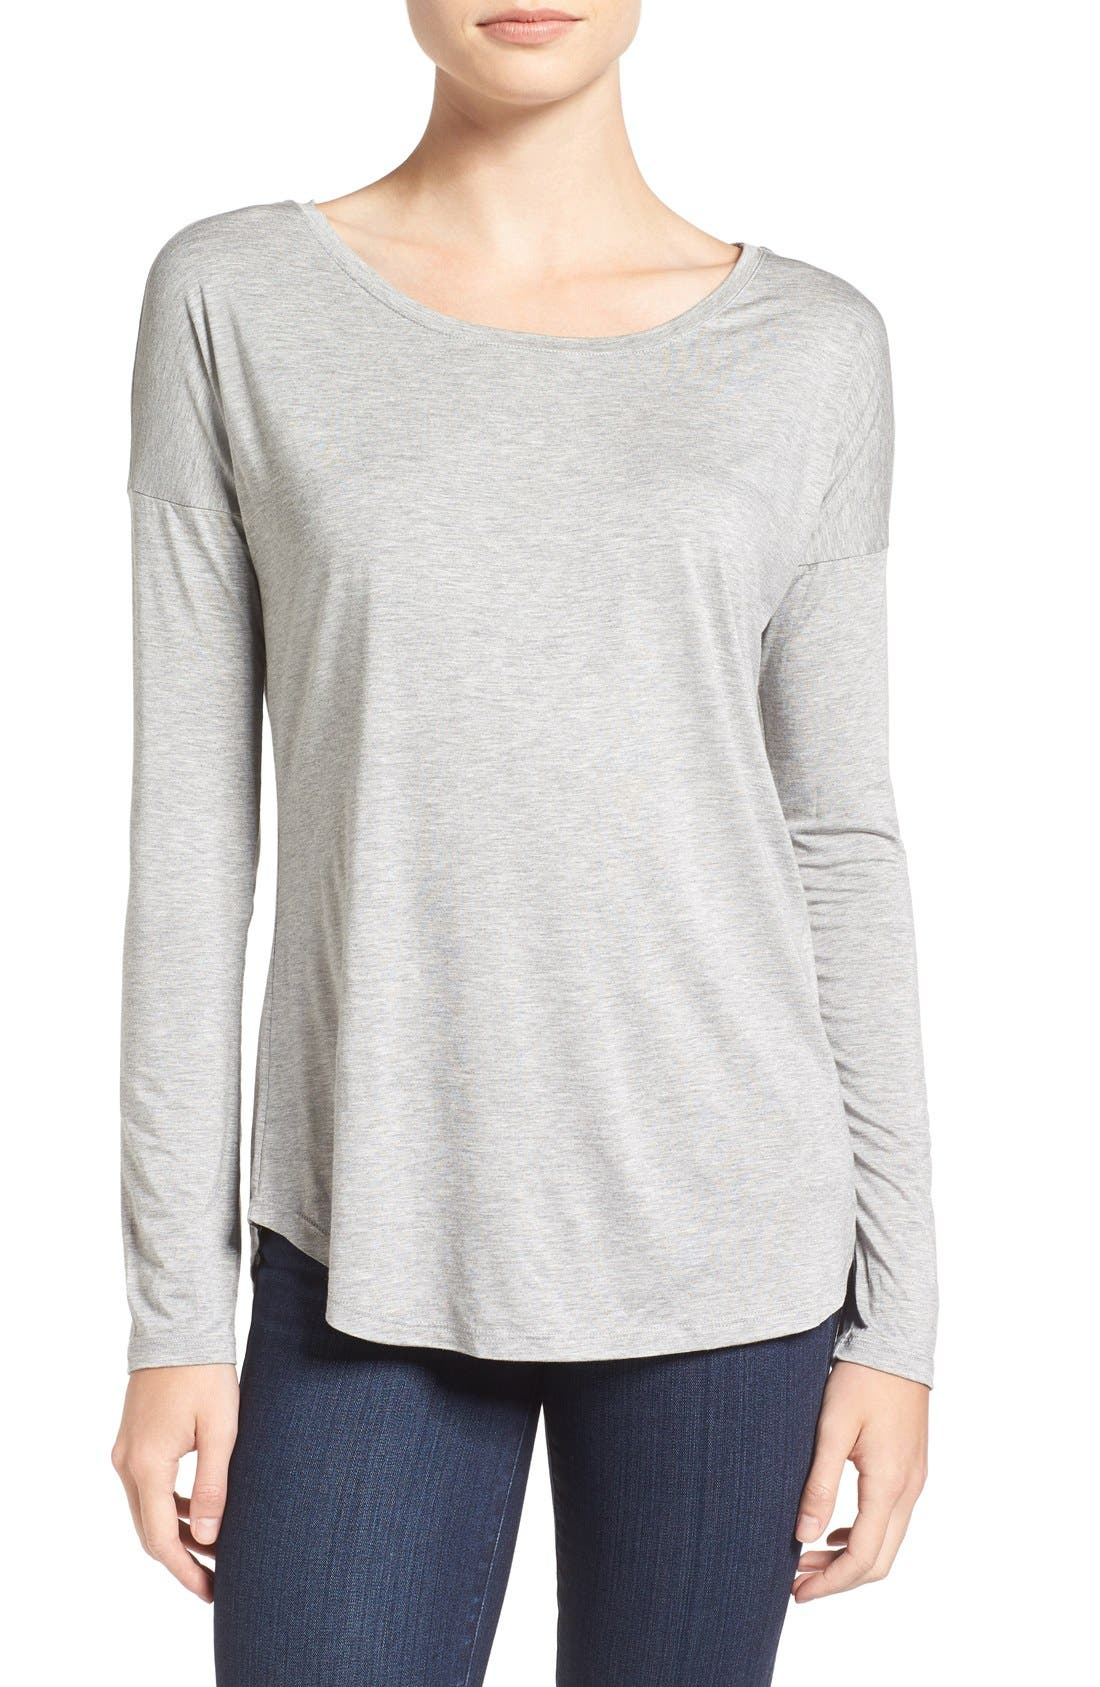 Main Image - PAIGE 'Bess' Stretch Jersey Boatneck Tee